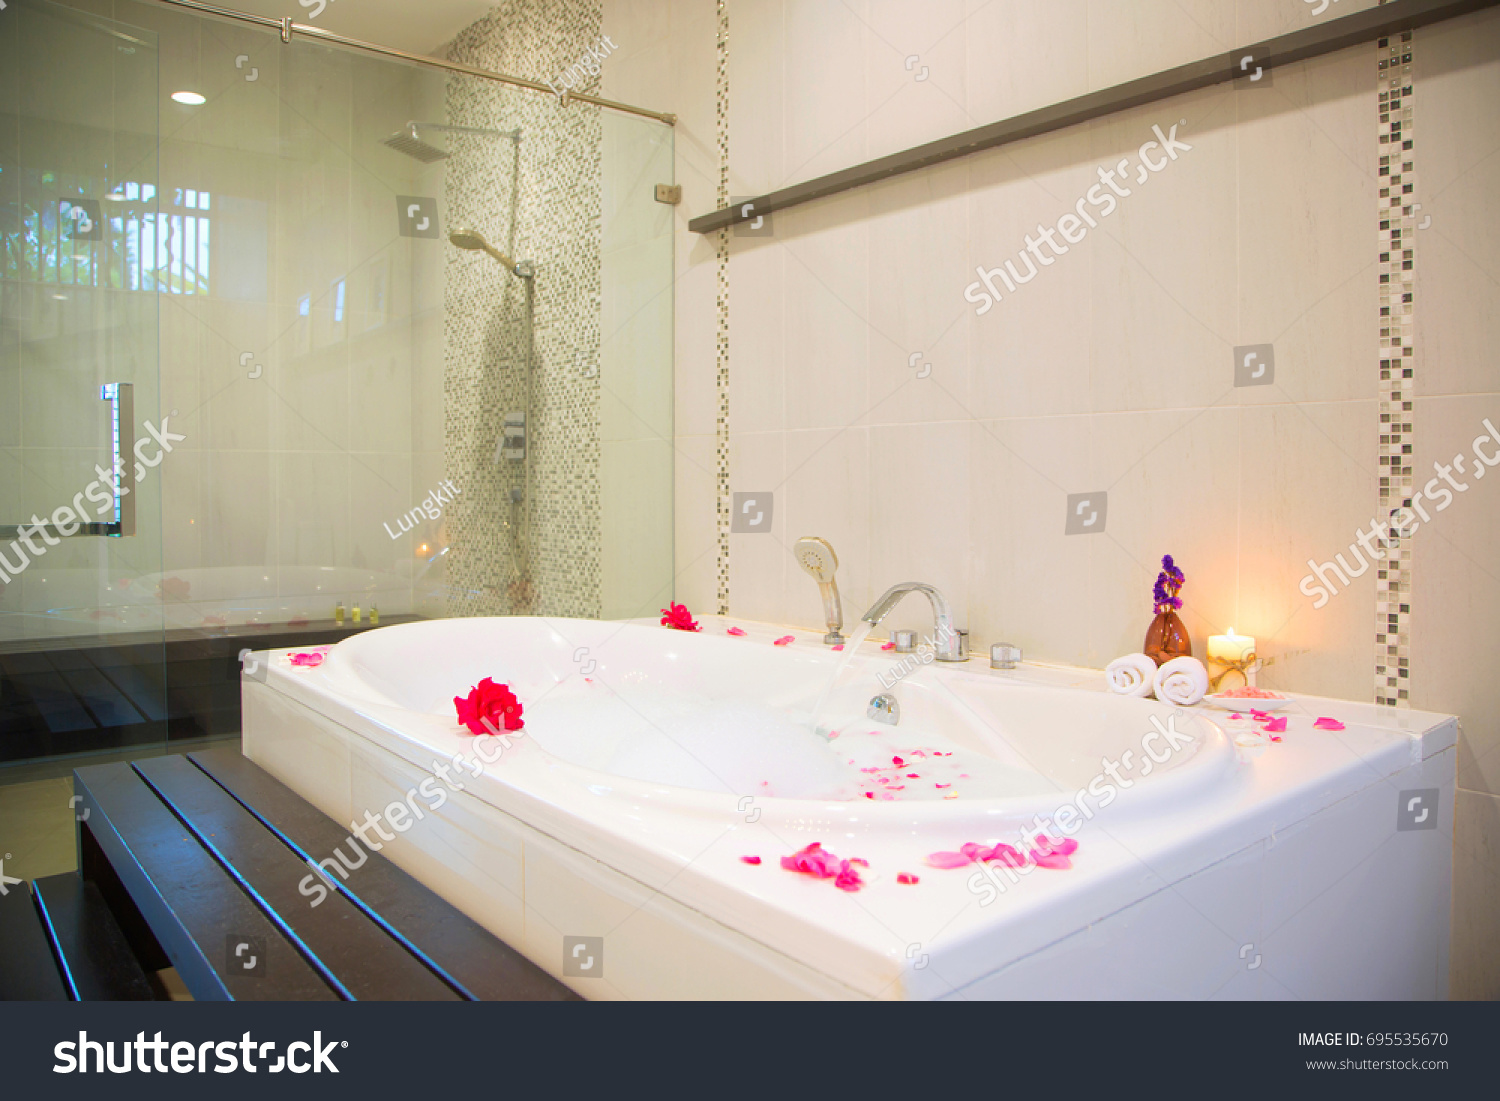 Rose Petals Put Bathtub Romantic Bathroom Stock Photo (Edit Now ...